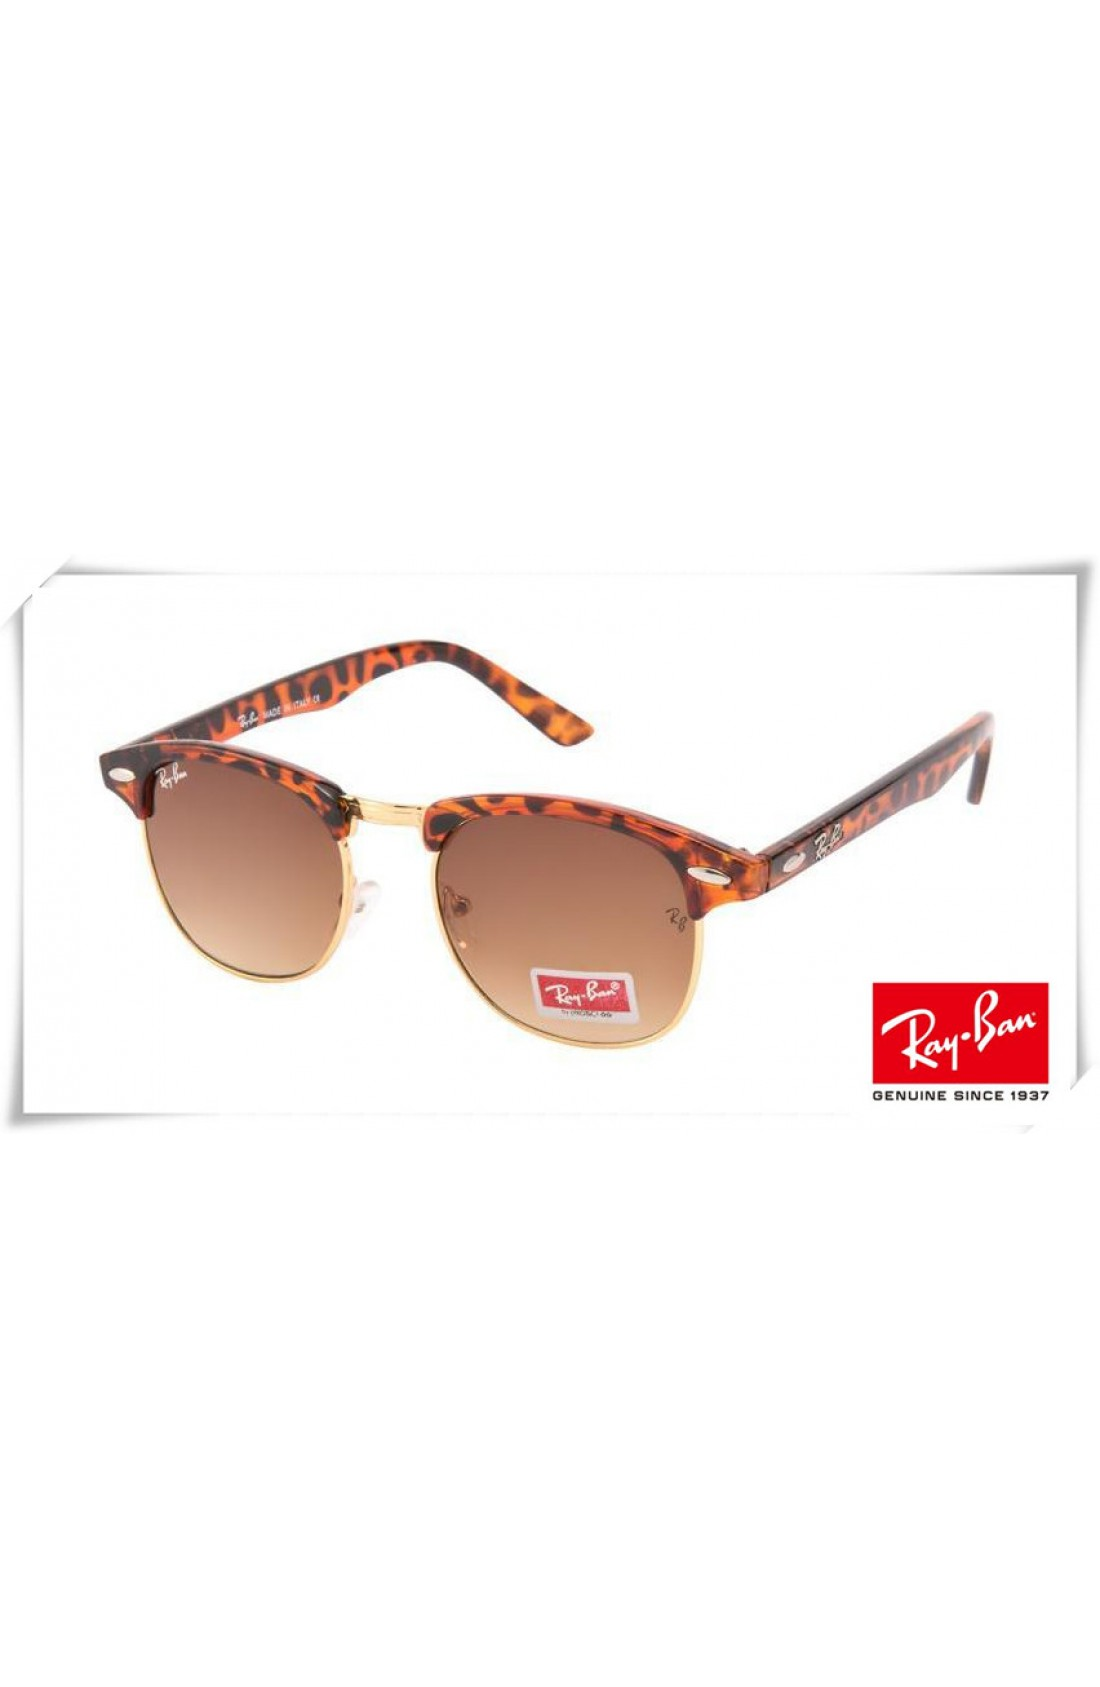 74180b21a978b Fake Ray Ban RB3016 Classic Clubmaster Sunglasses Tortoise Brown Red ...